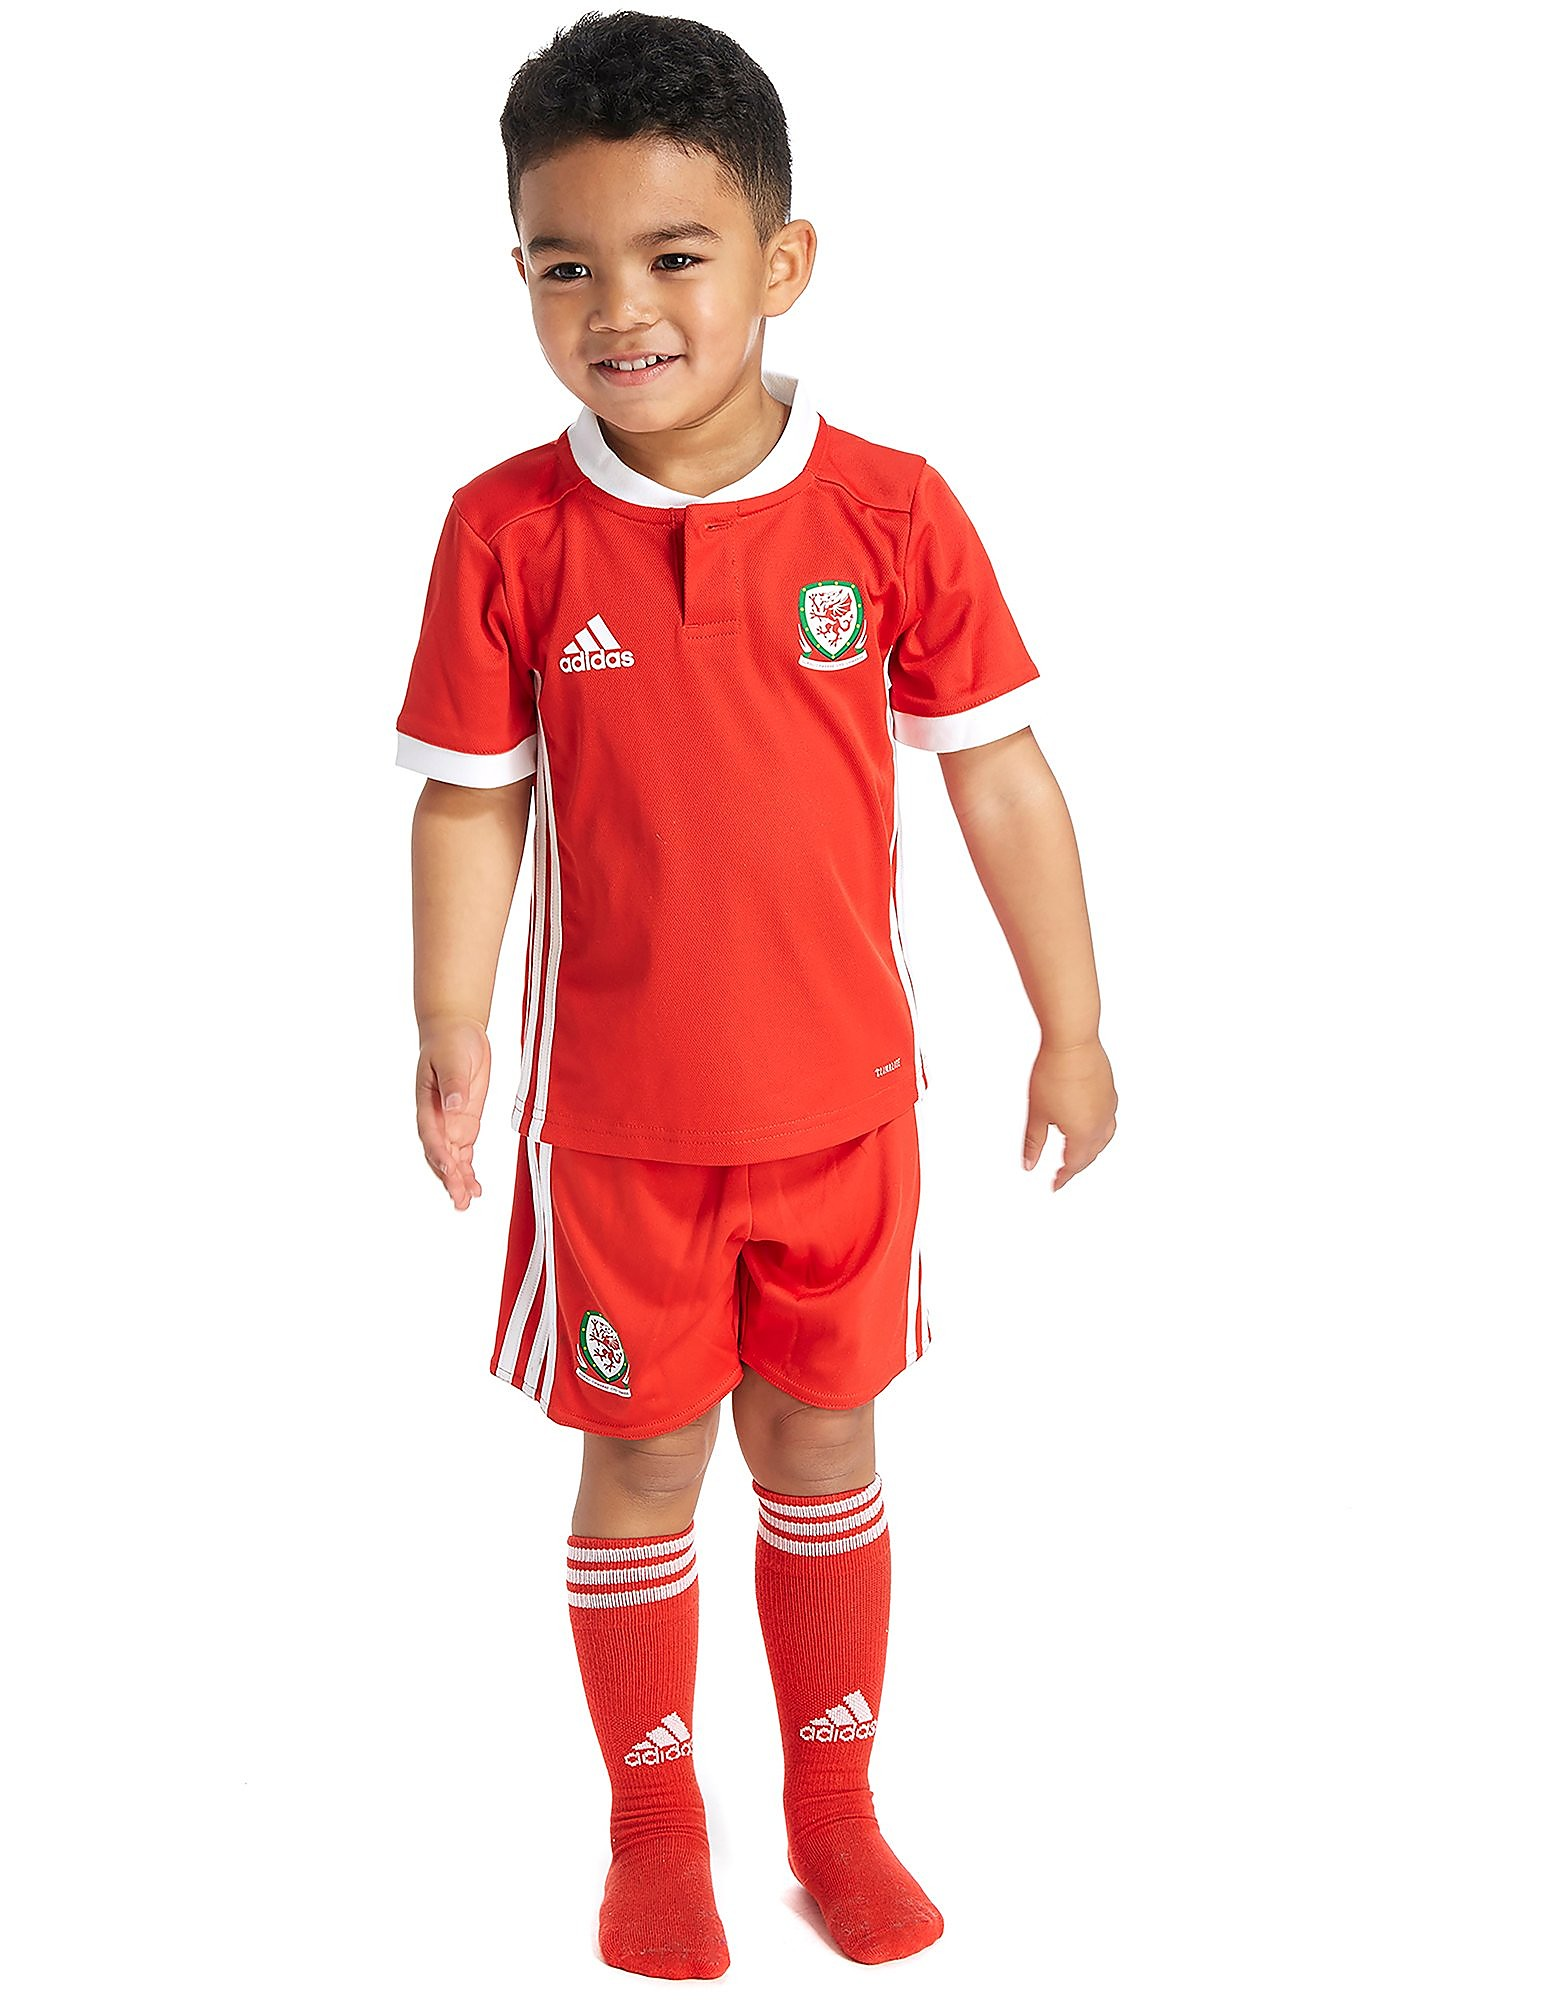 adidas Wales 2017/18 Home Kit Children